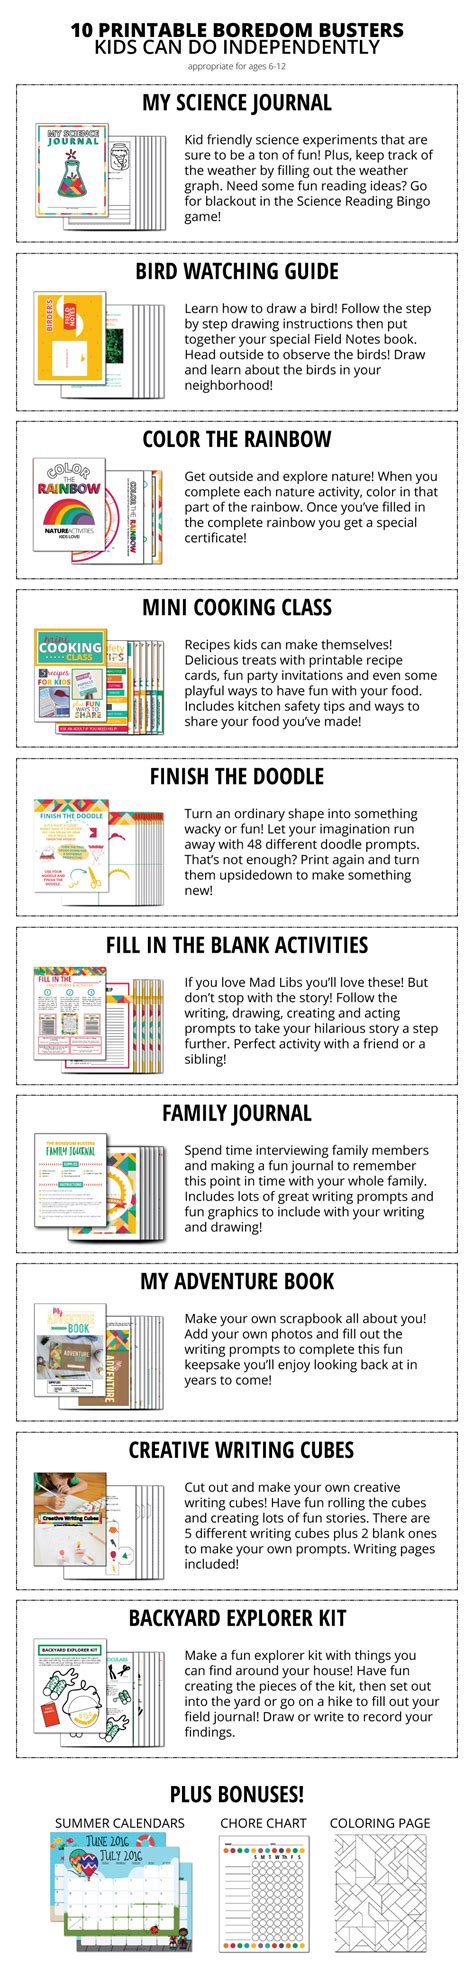 Printable Boredom Buster Activity Sheets Eclectic Momsense